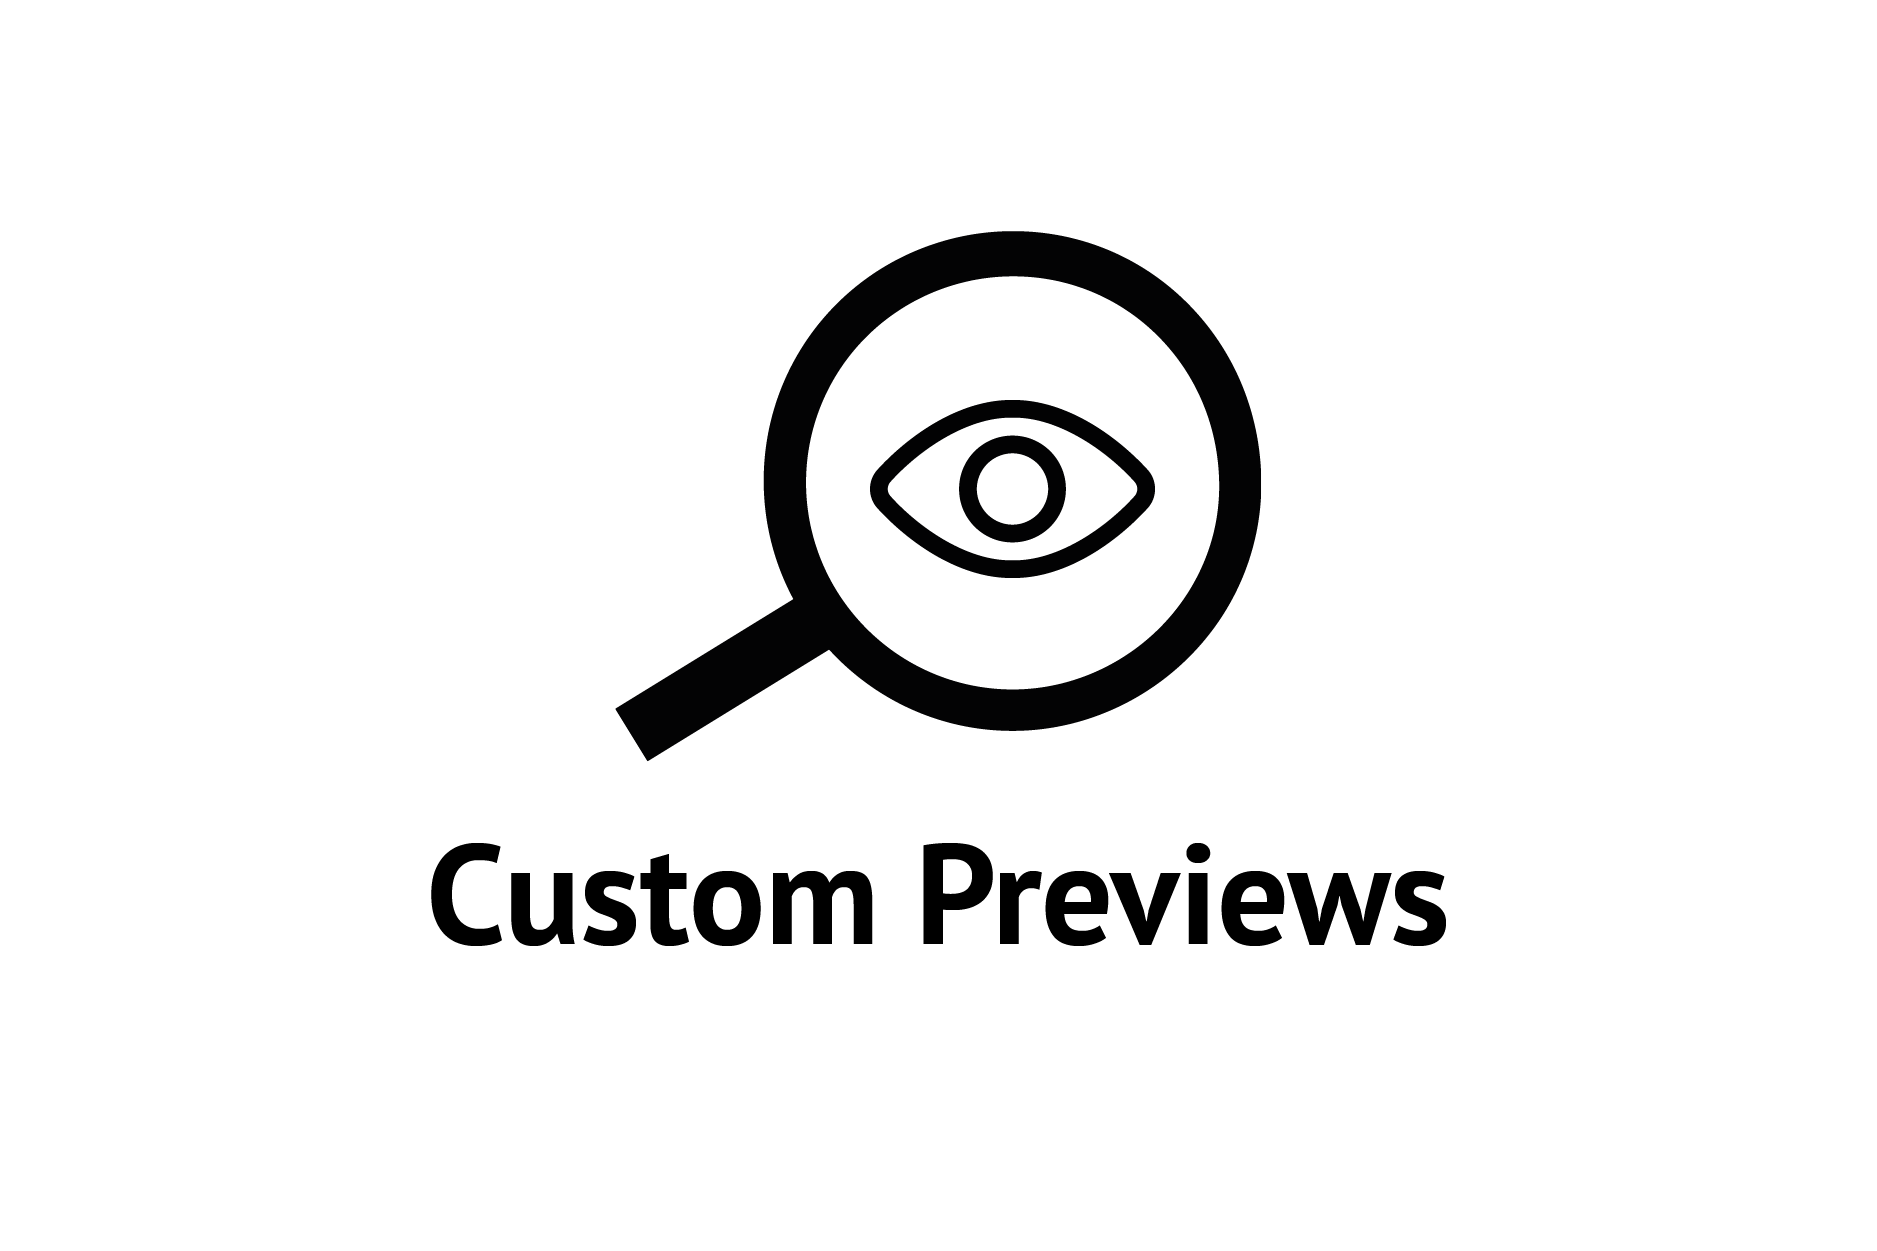 Custom Previews